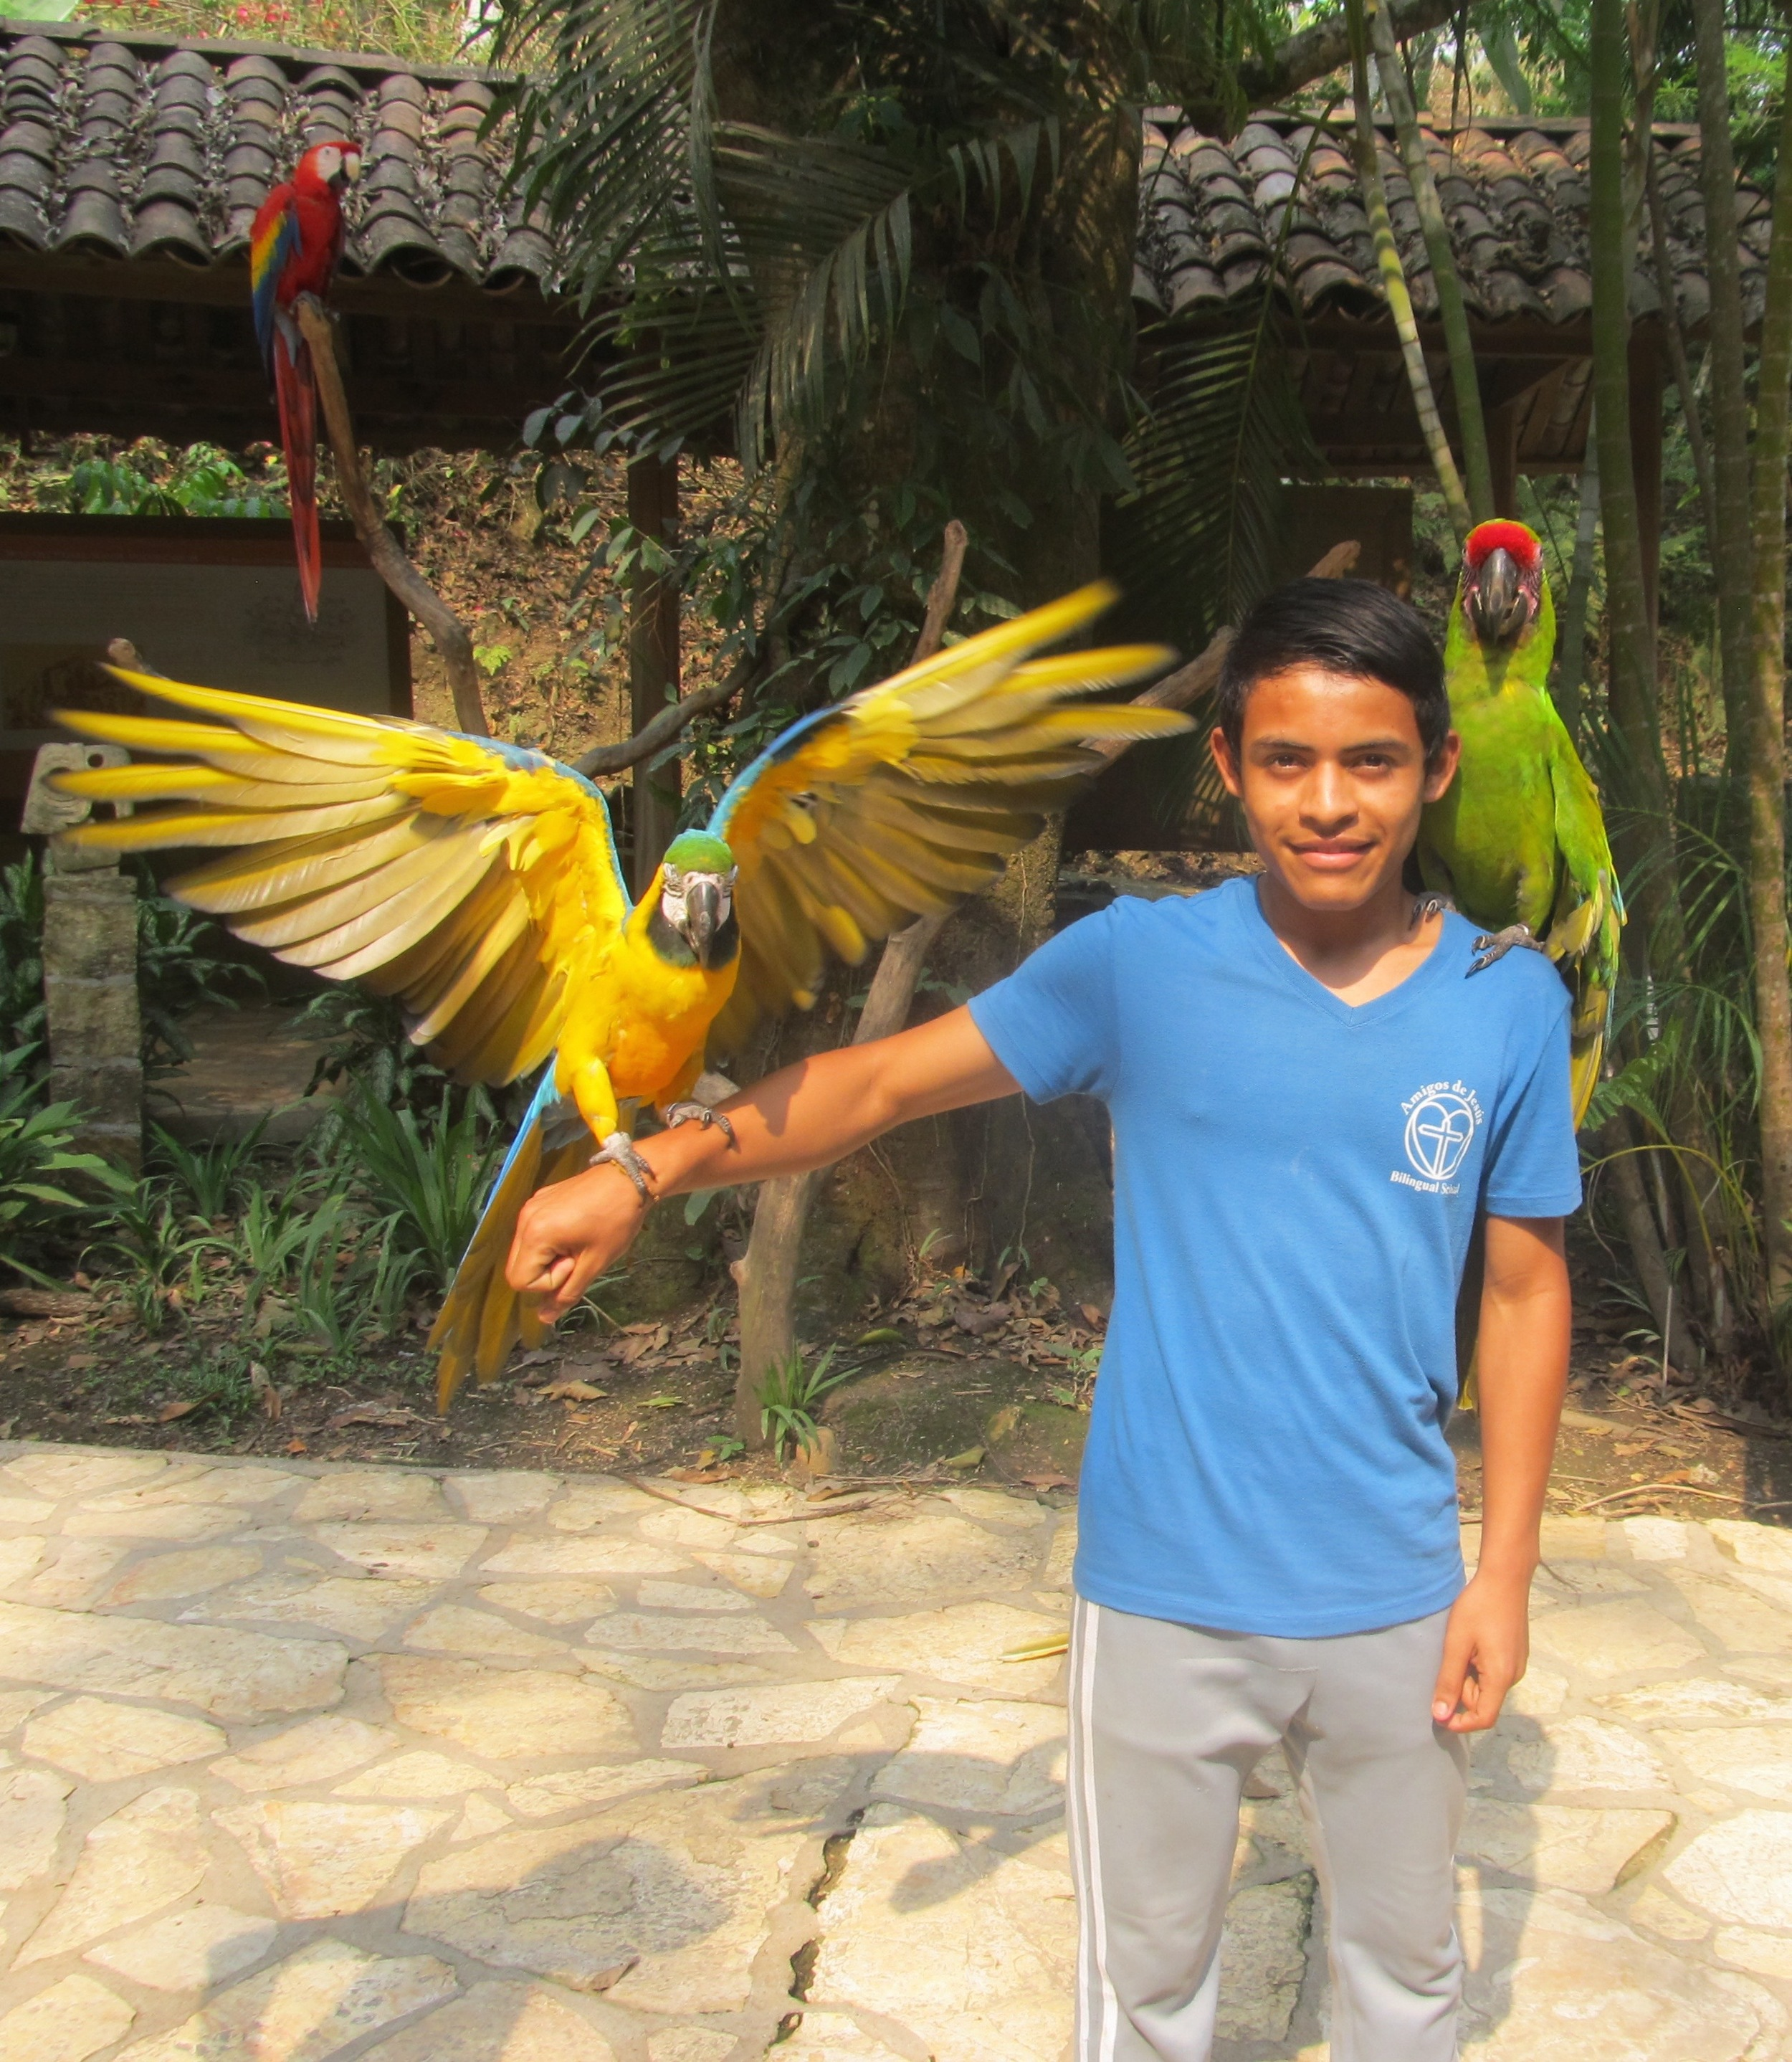 Posing with the national bird of Honduras - the macaw -during a school field trip to Copan Ruinas, Honduras, in April.